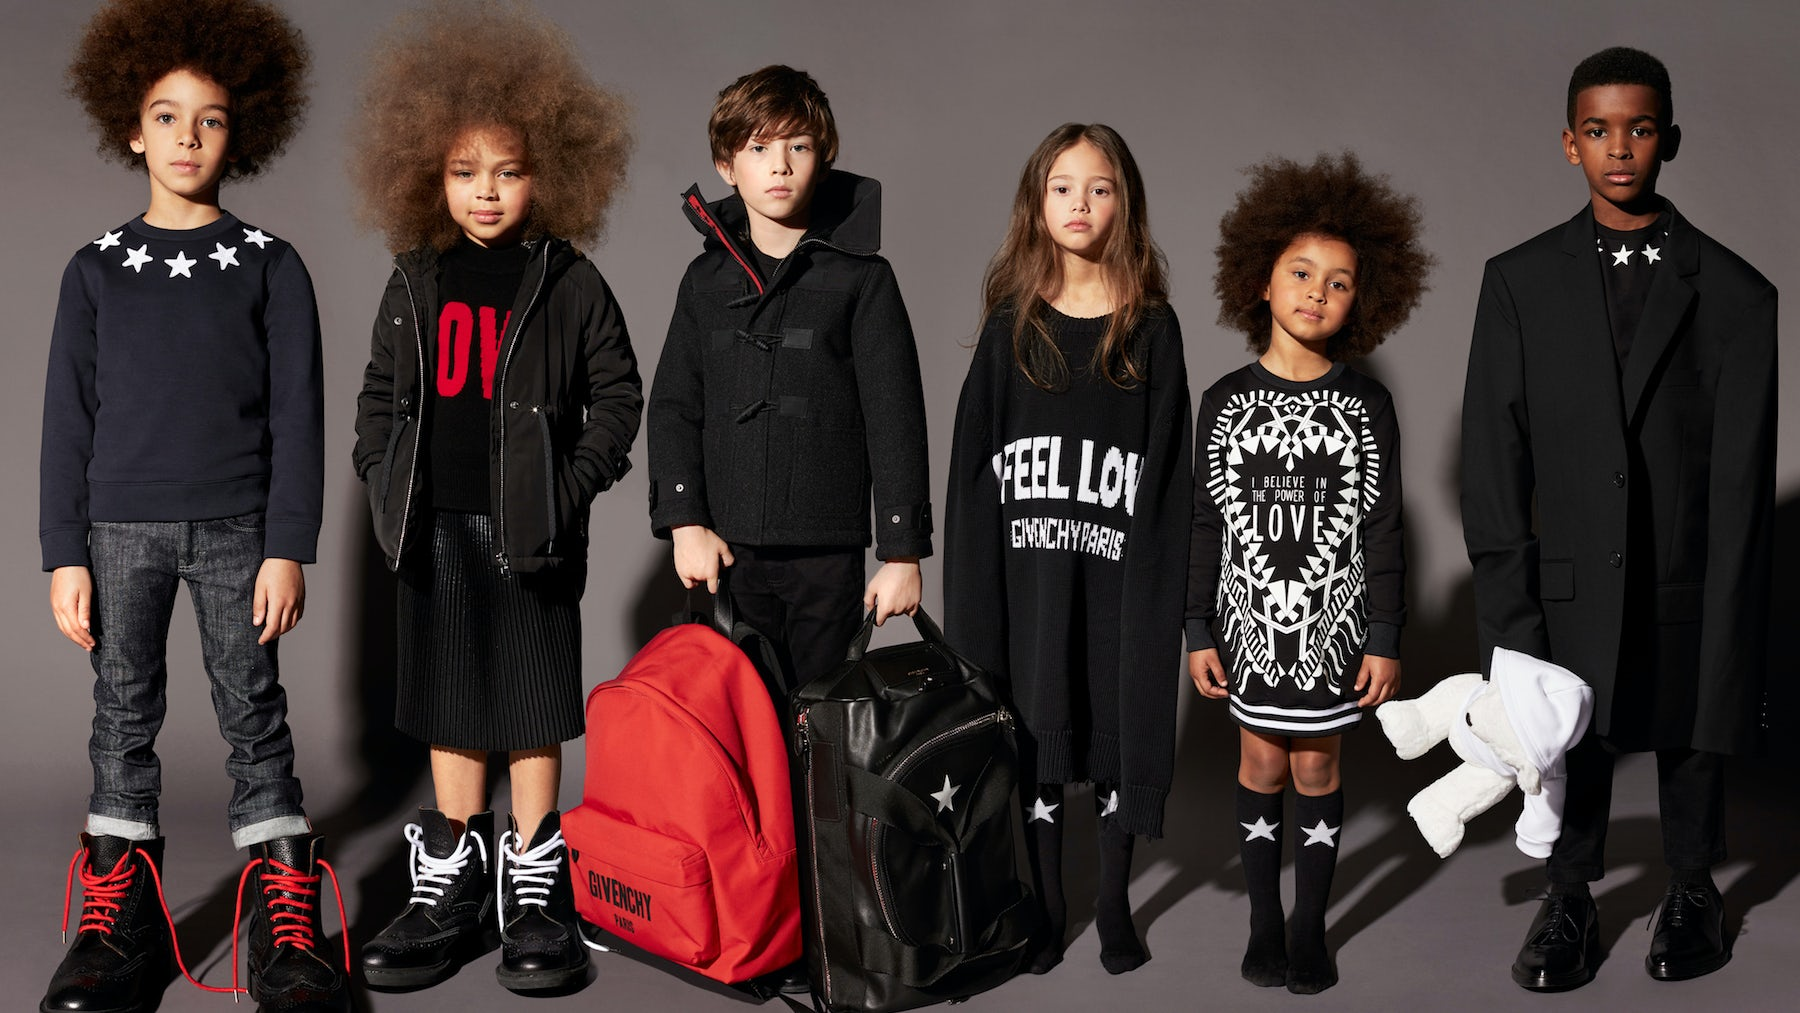 News Bites | First Look at Givenchy Childrenswear, Flowerbx Funding, The Webster x Lane Crawford